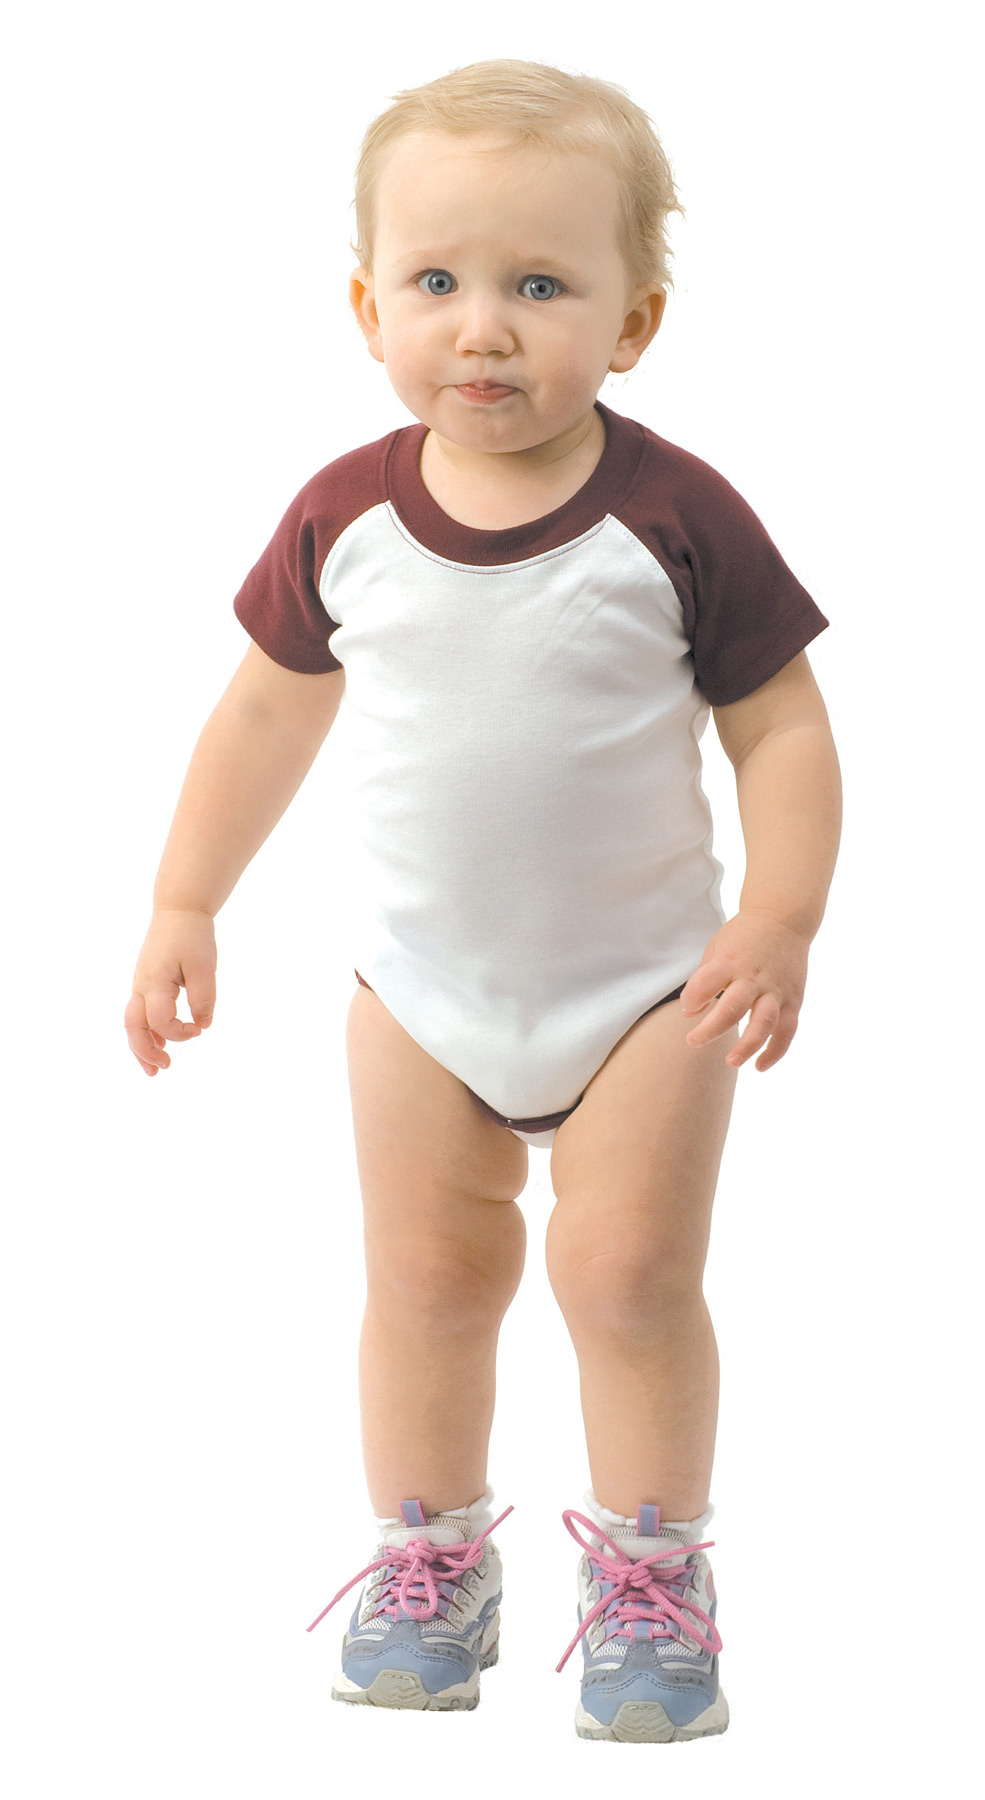 Monag 100240 - Interlock Short Sleeve Raglan One-Piece